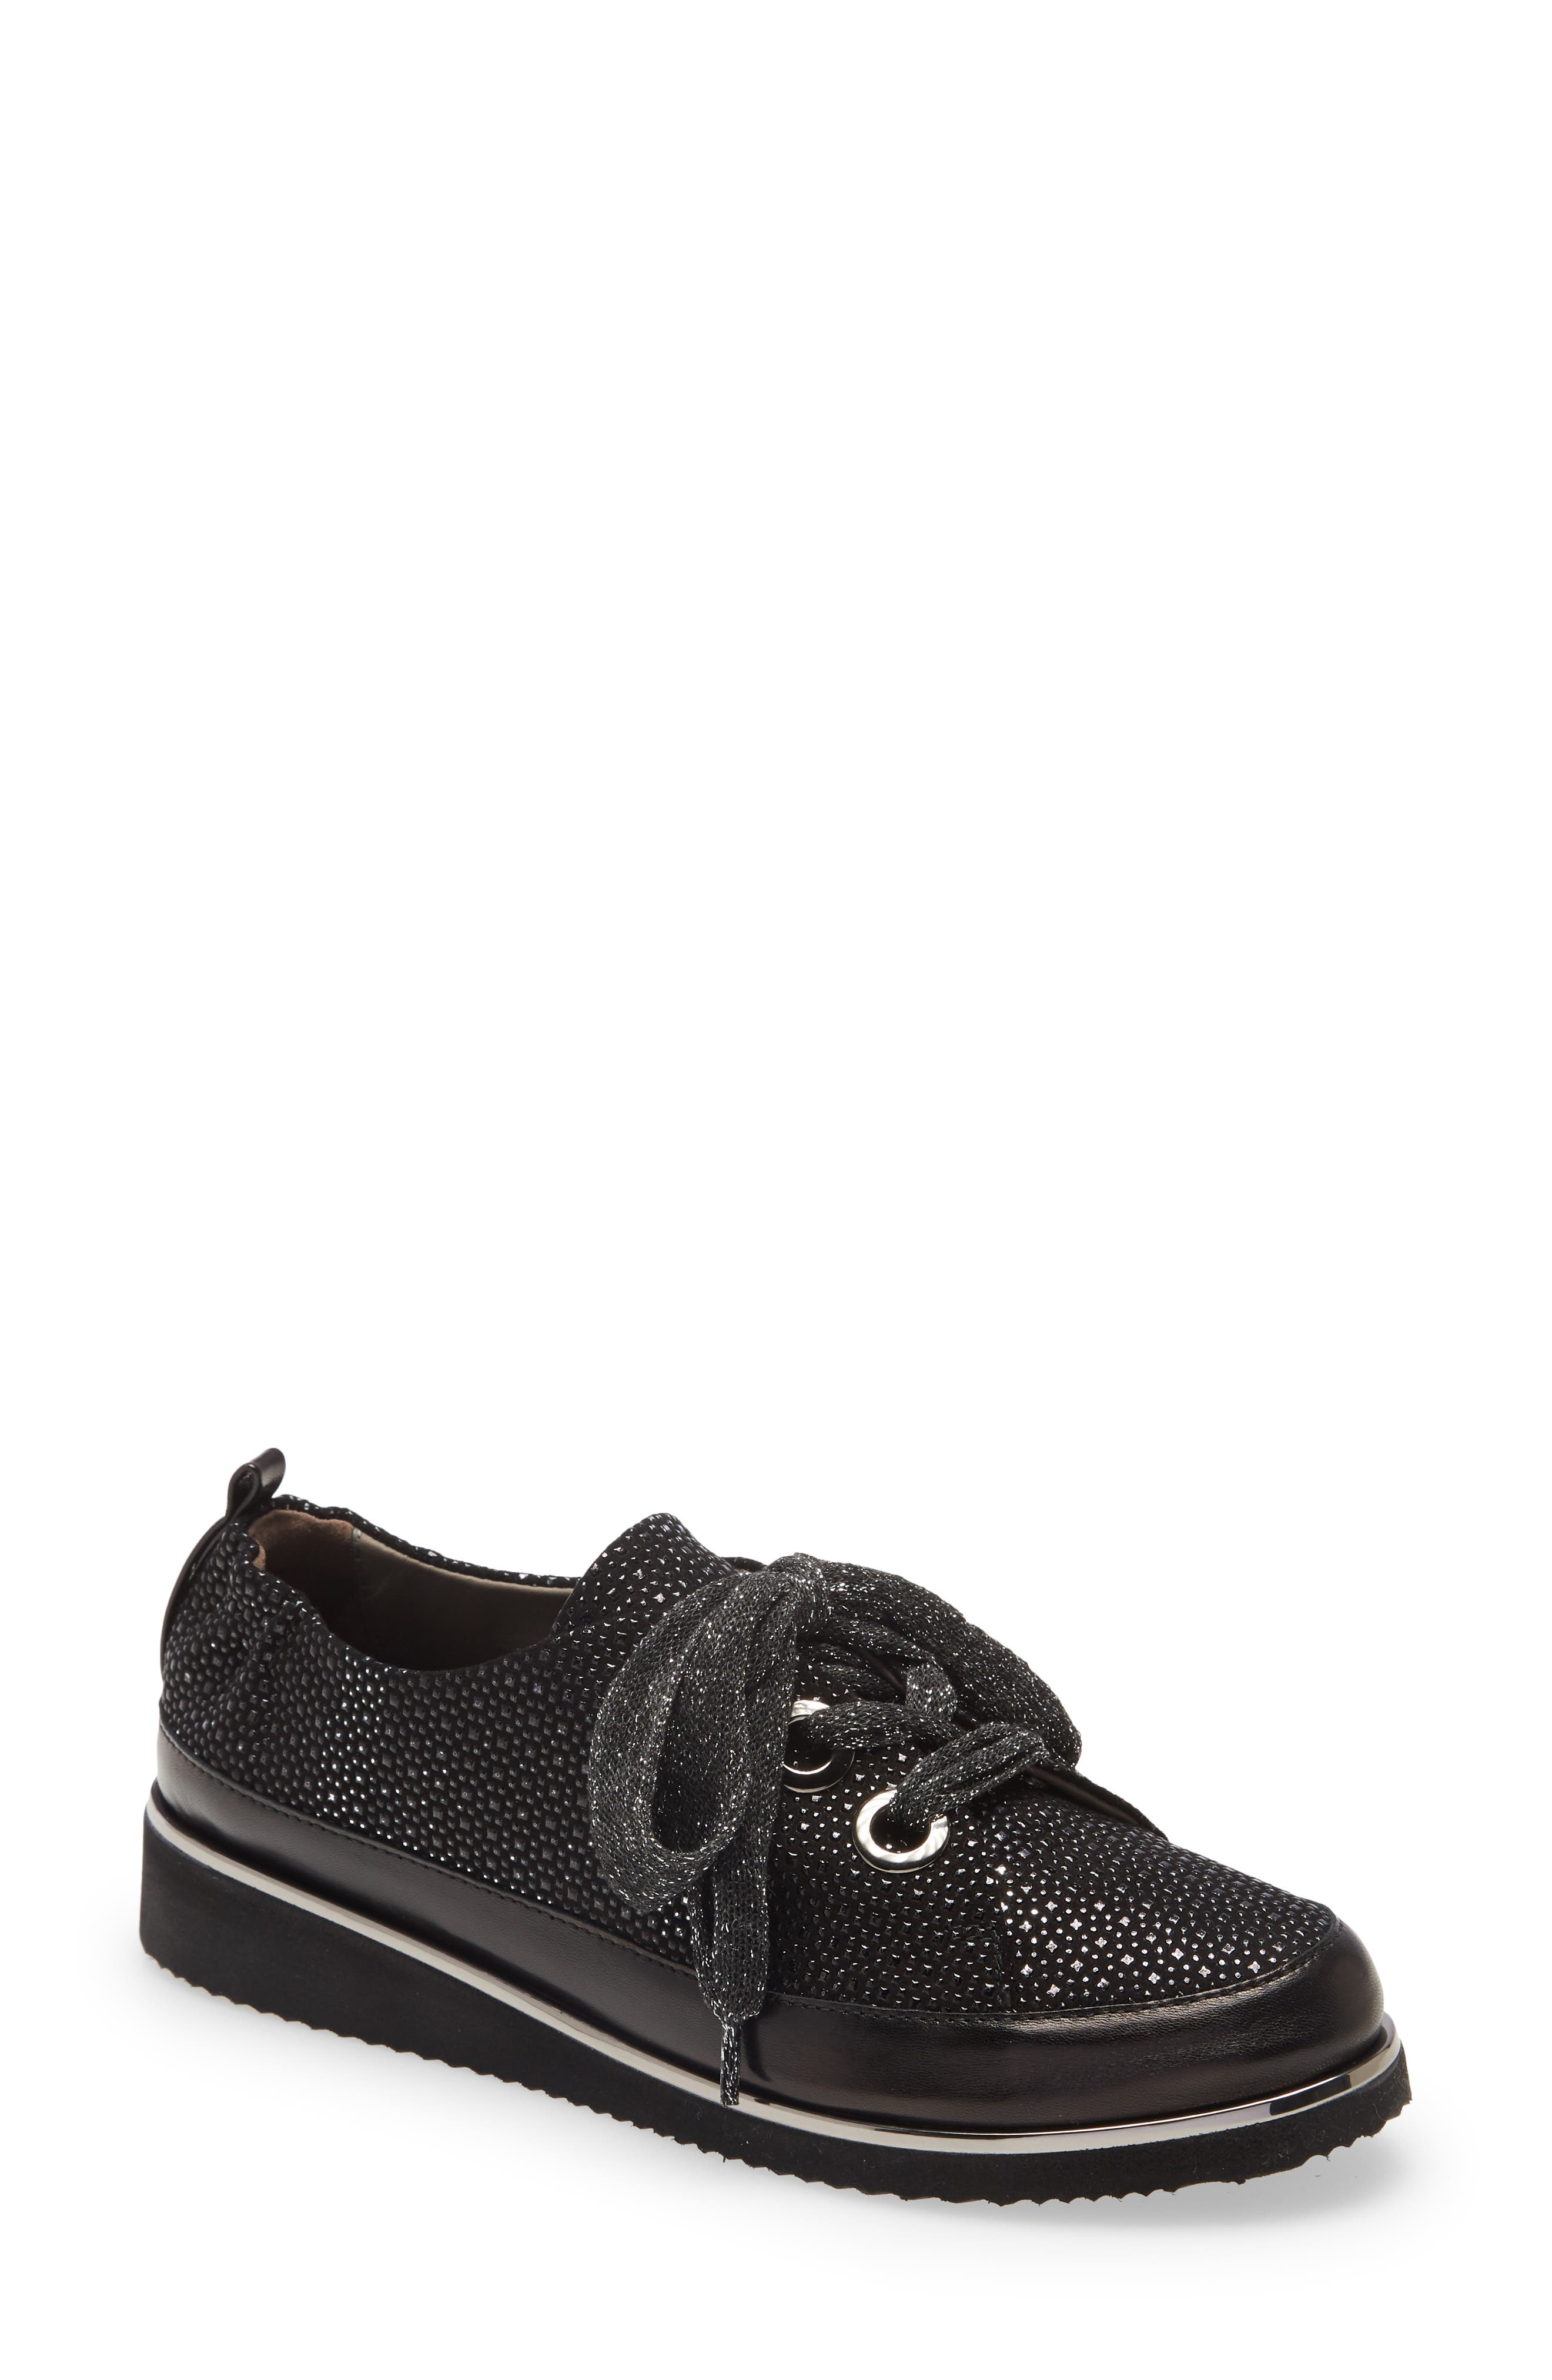 Women's Ron White Shoes | Nordstrom